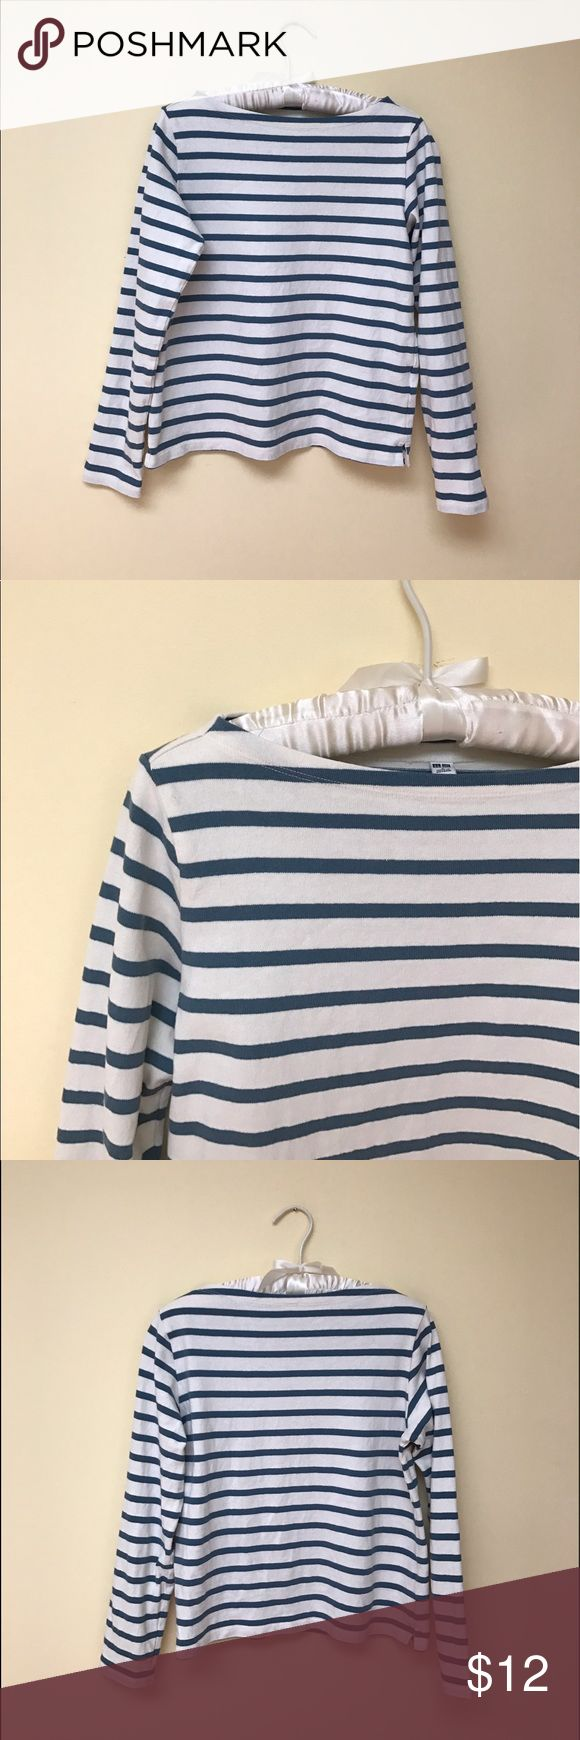 uniqlo | boxy boat neck tee A classic, nautical top in a great quality starched cotton. Uniqlo Tops Tees - Long Sleeve